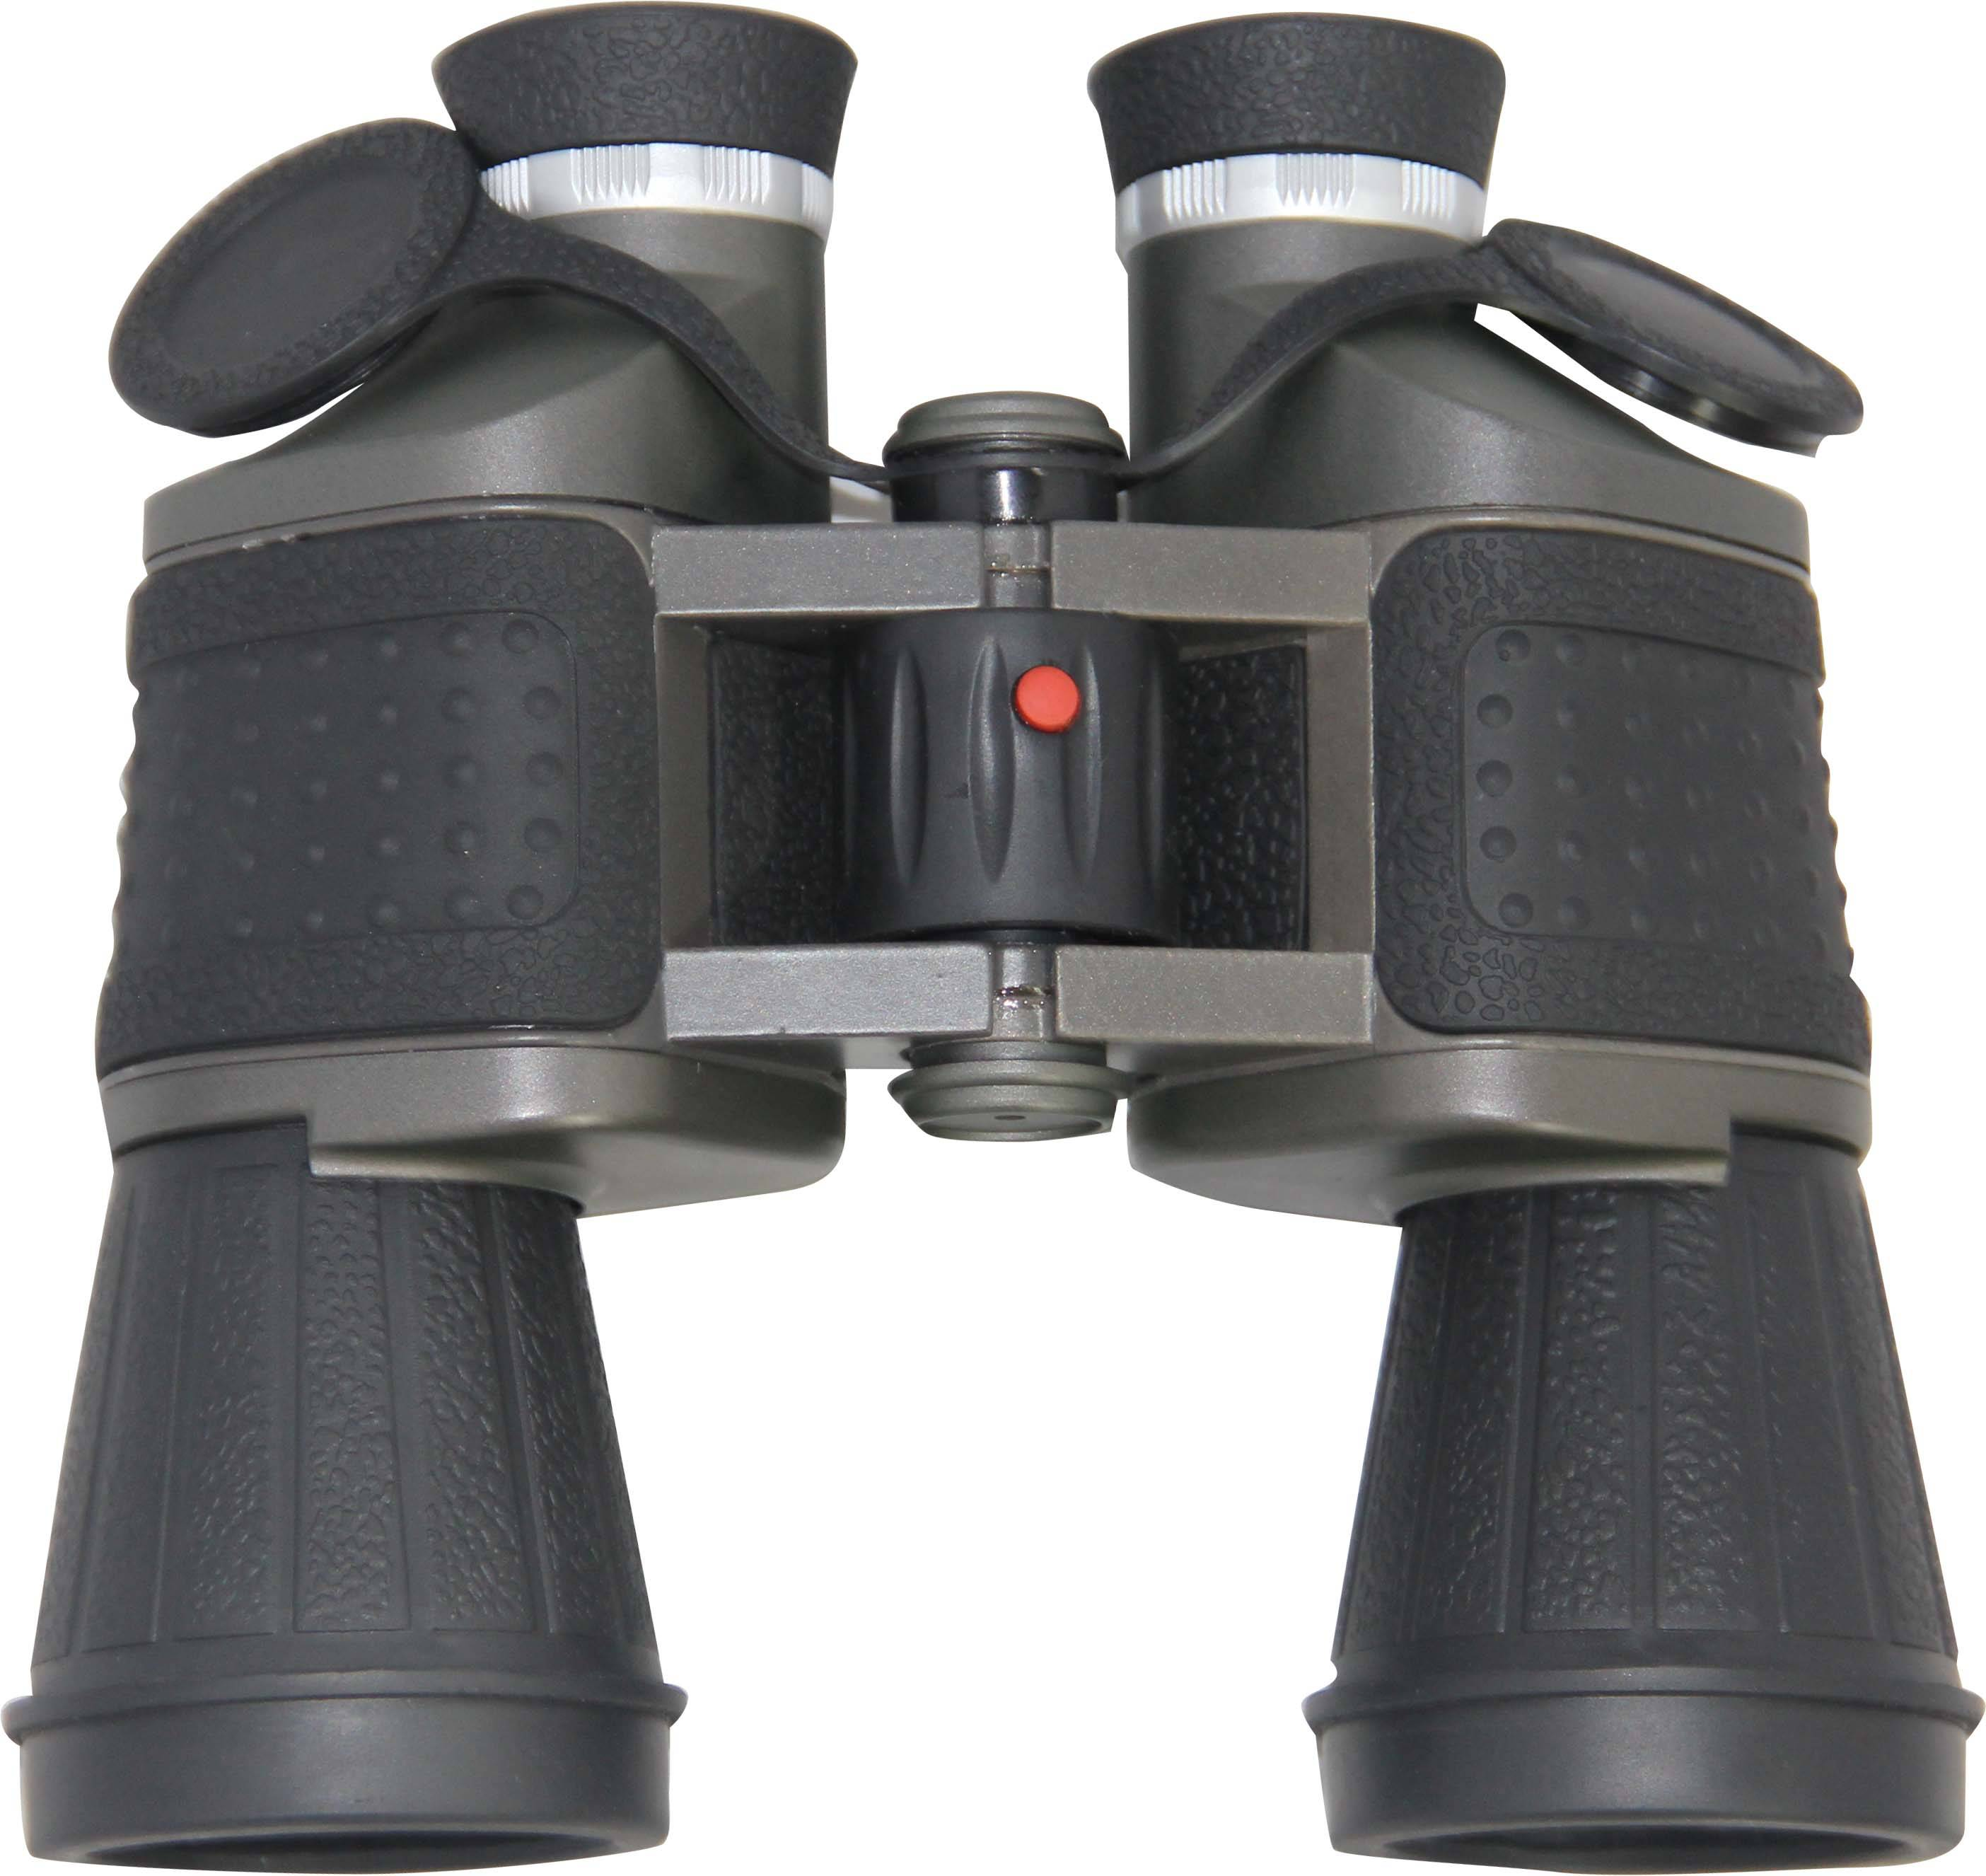 (BM-5006)7X50 wide angle waterproof binoculars